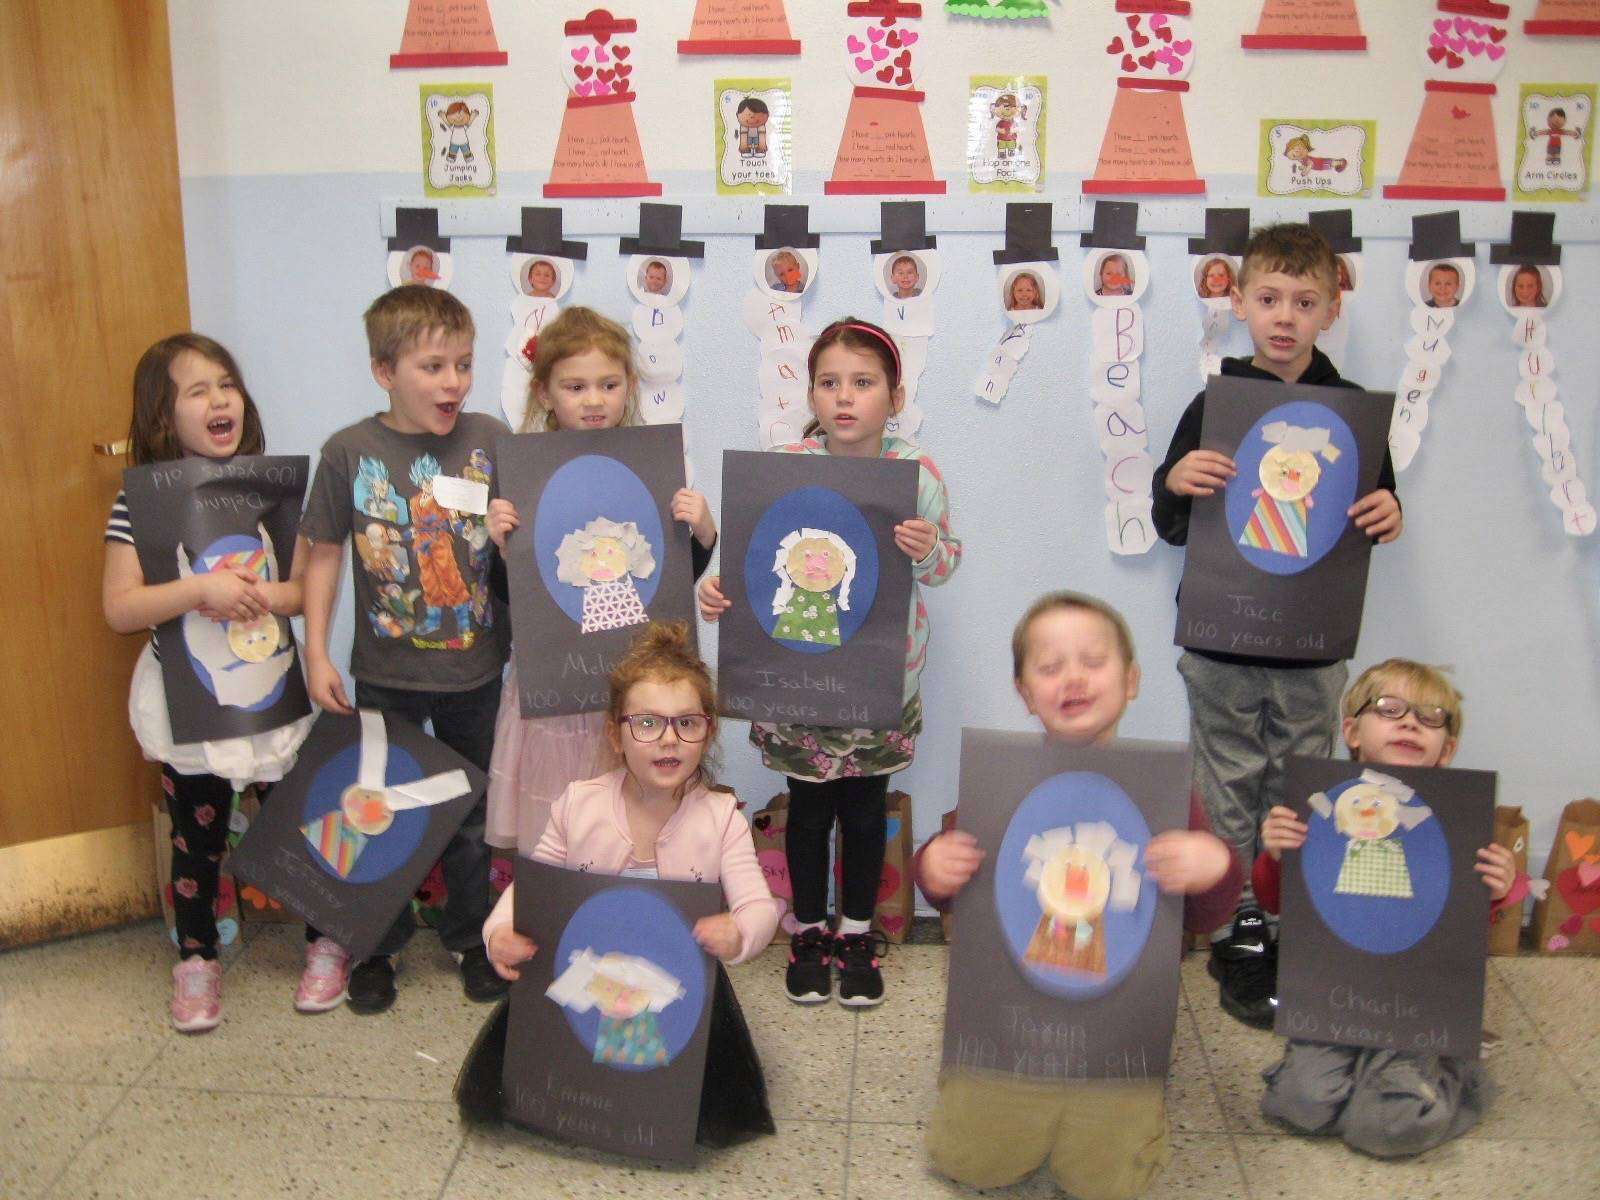 8 students with 100 year old self portraits.